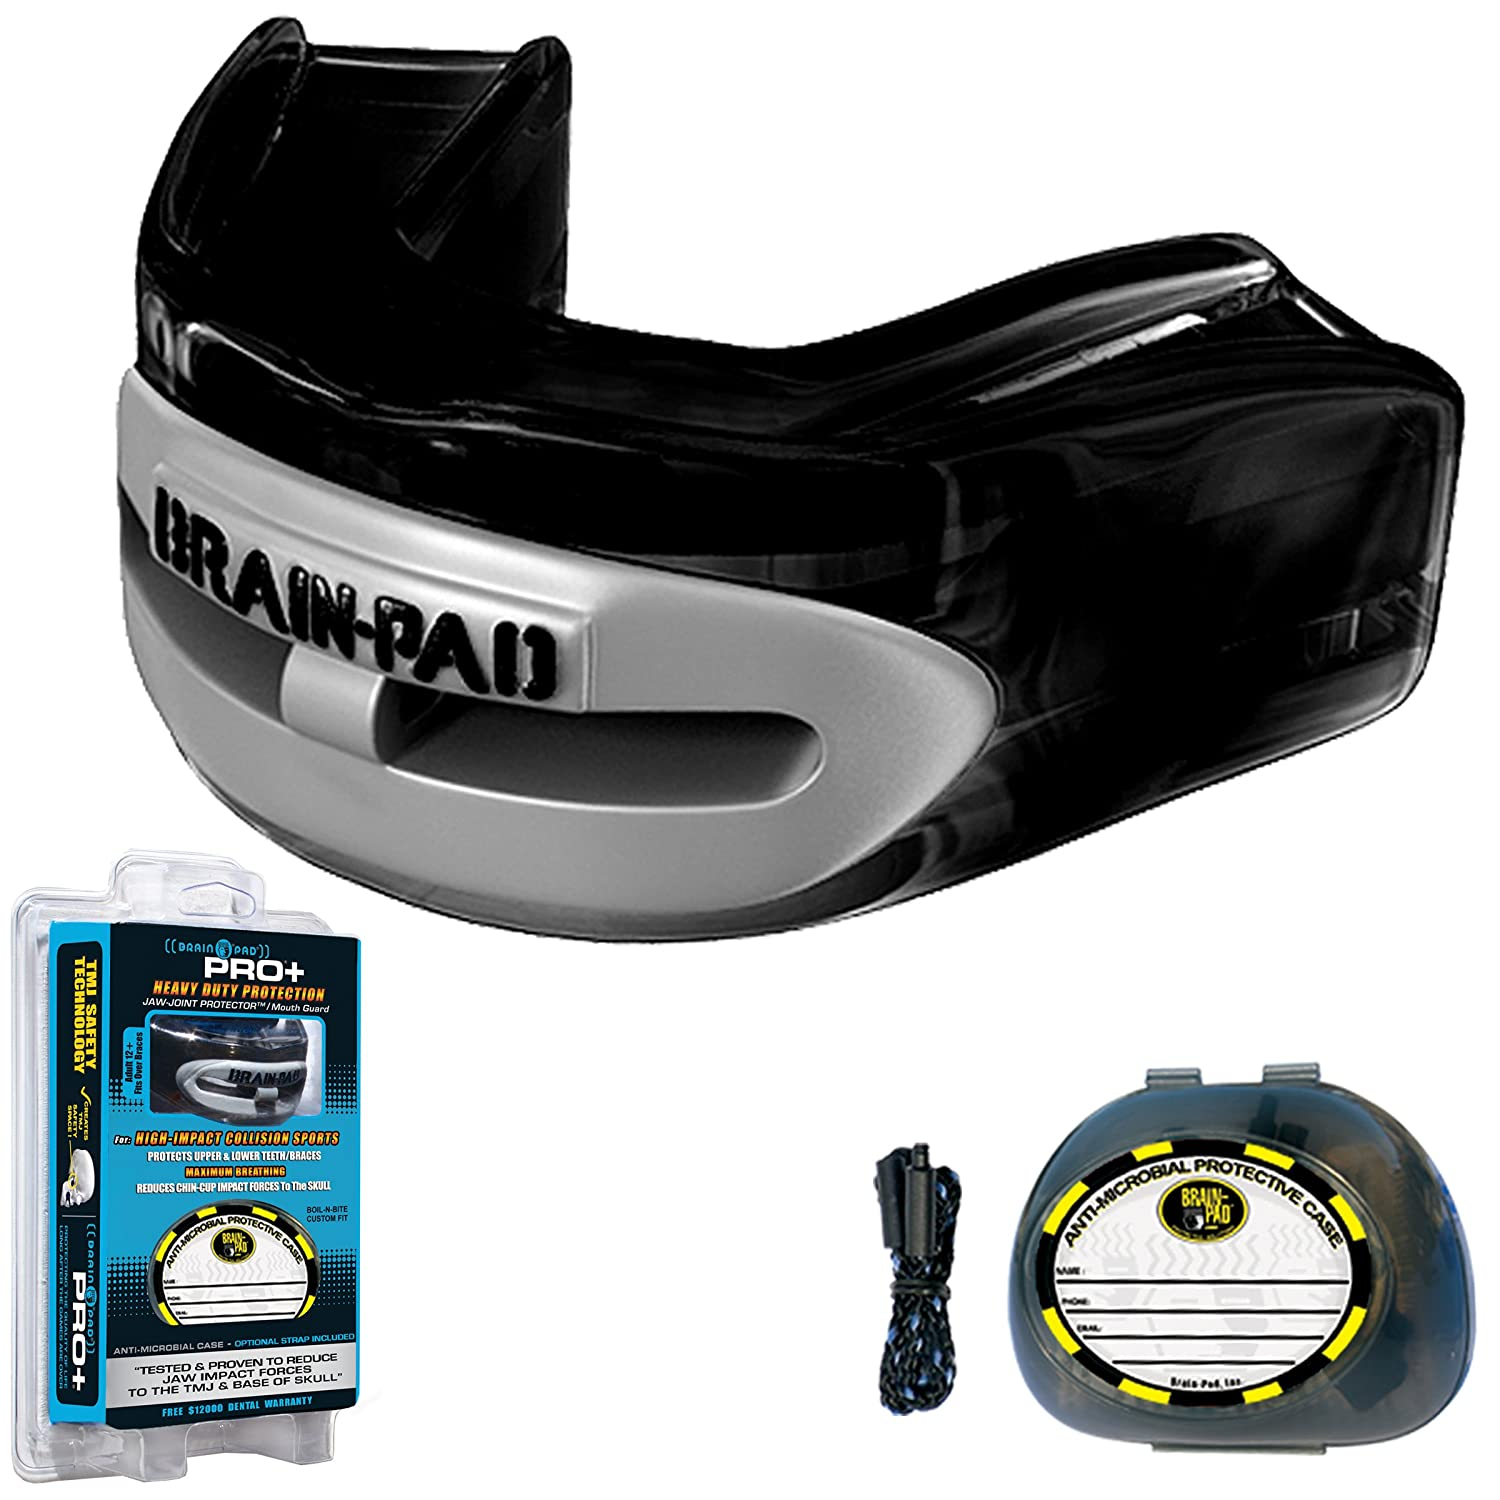 輝い Brain-Pad PRO+PLUS Strap -/Strapless Title Mouthguard - ADULT - Black Mouthguard/Gray by Title Boxing B000A7V9NK, glassliving奏:2f76ac6b --- a0267596.xsph.ru